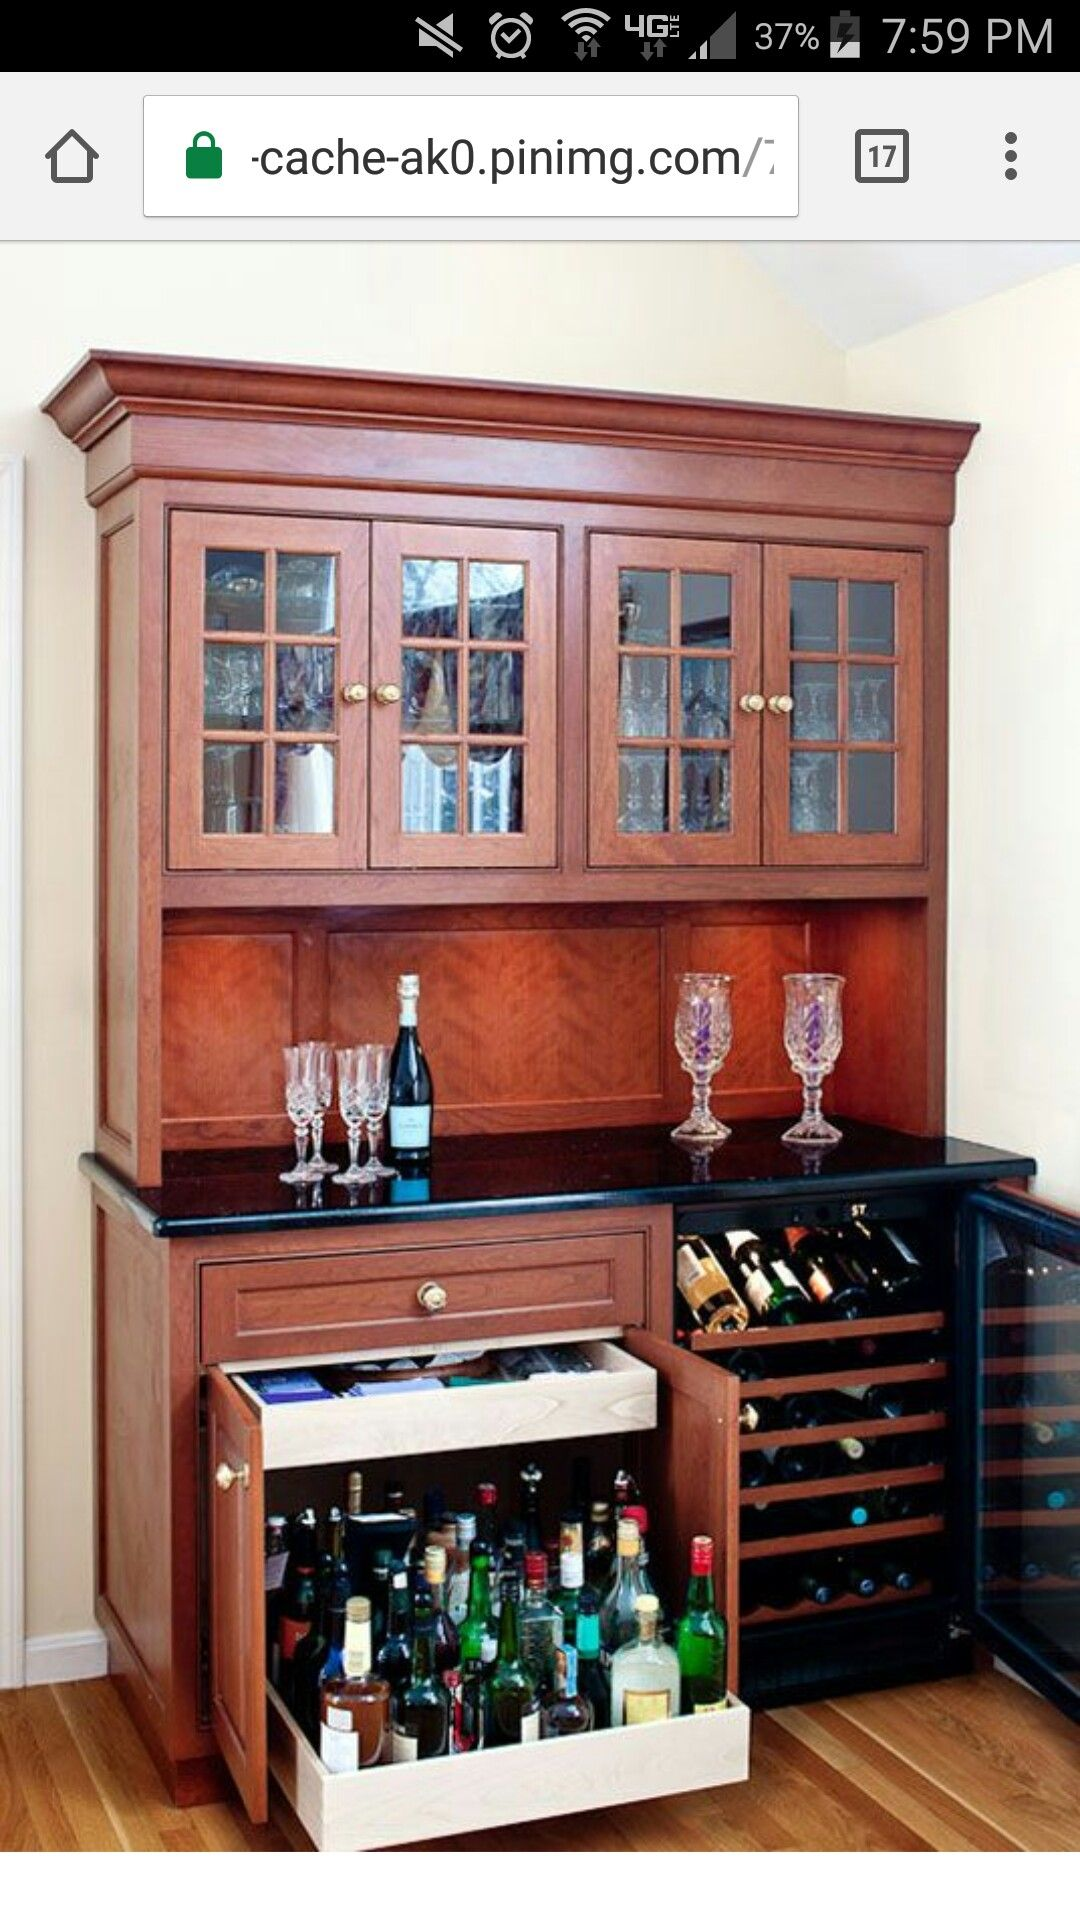 the tempered sort are as now those shelves fits all hutch spirits it in is current boozecollection booze liquor inventory a deep of following bottles